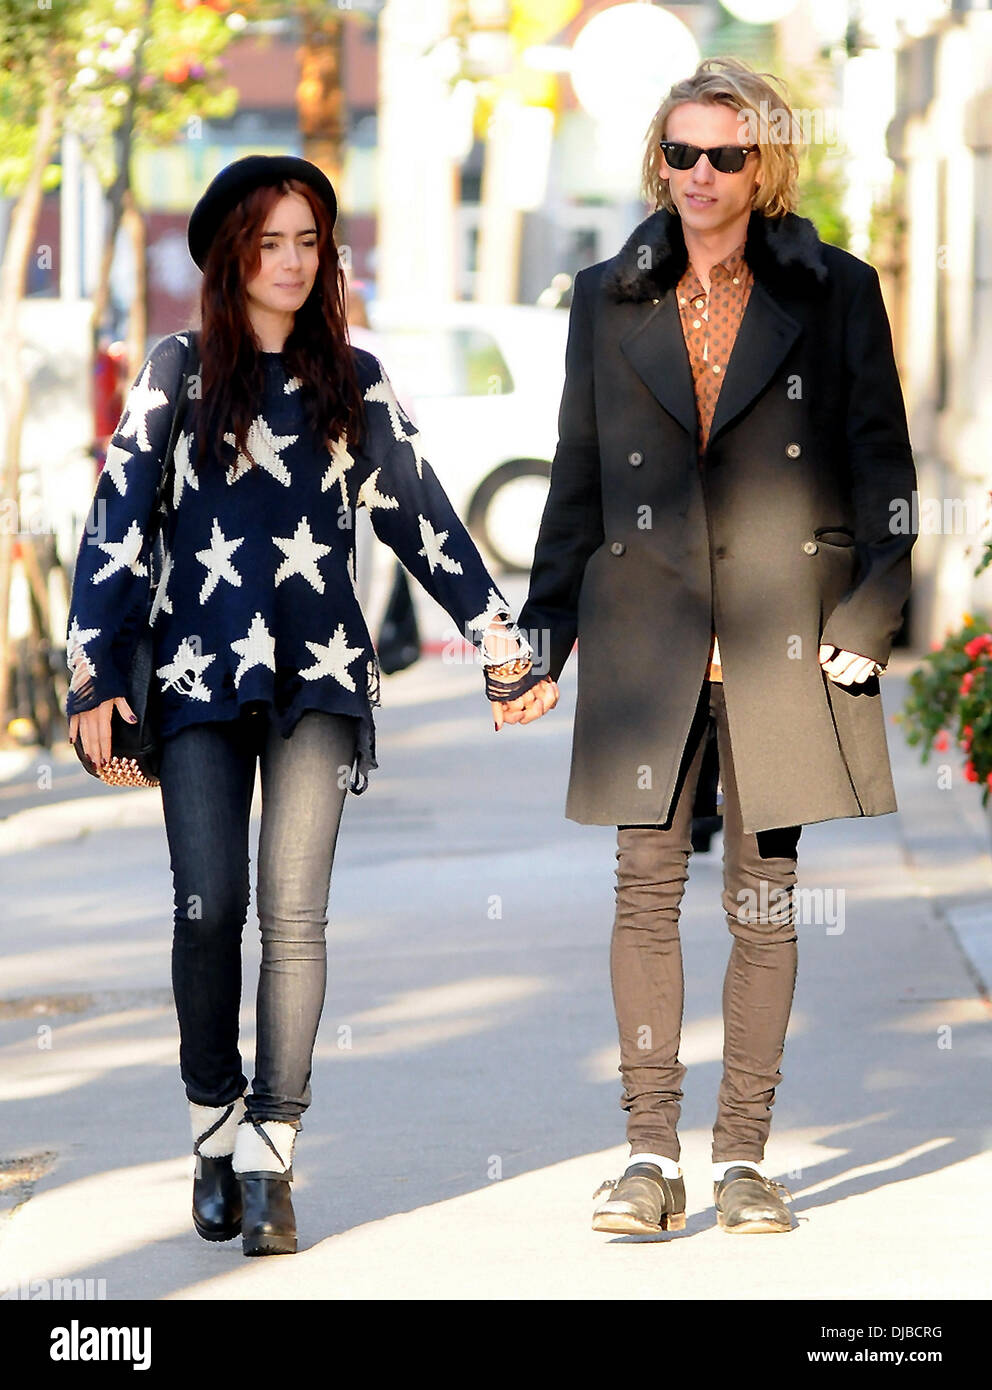 Lily collins and jamie campbell bower dating 2019